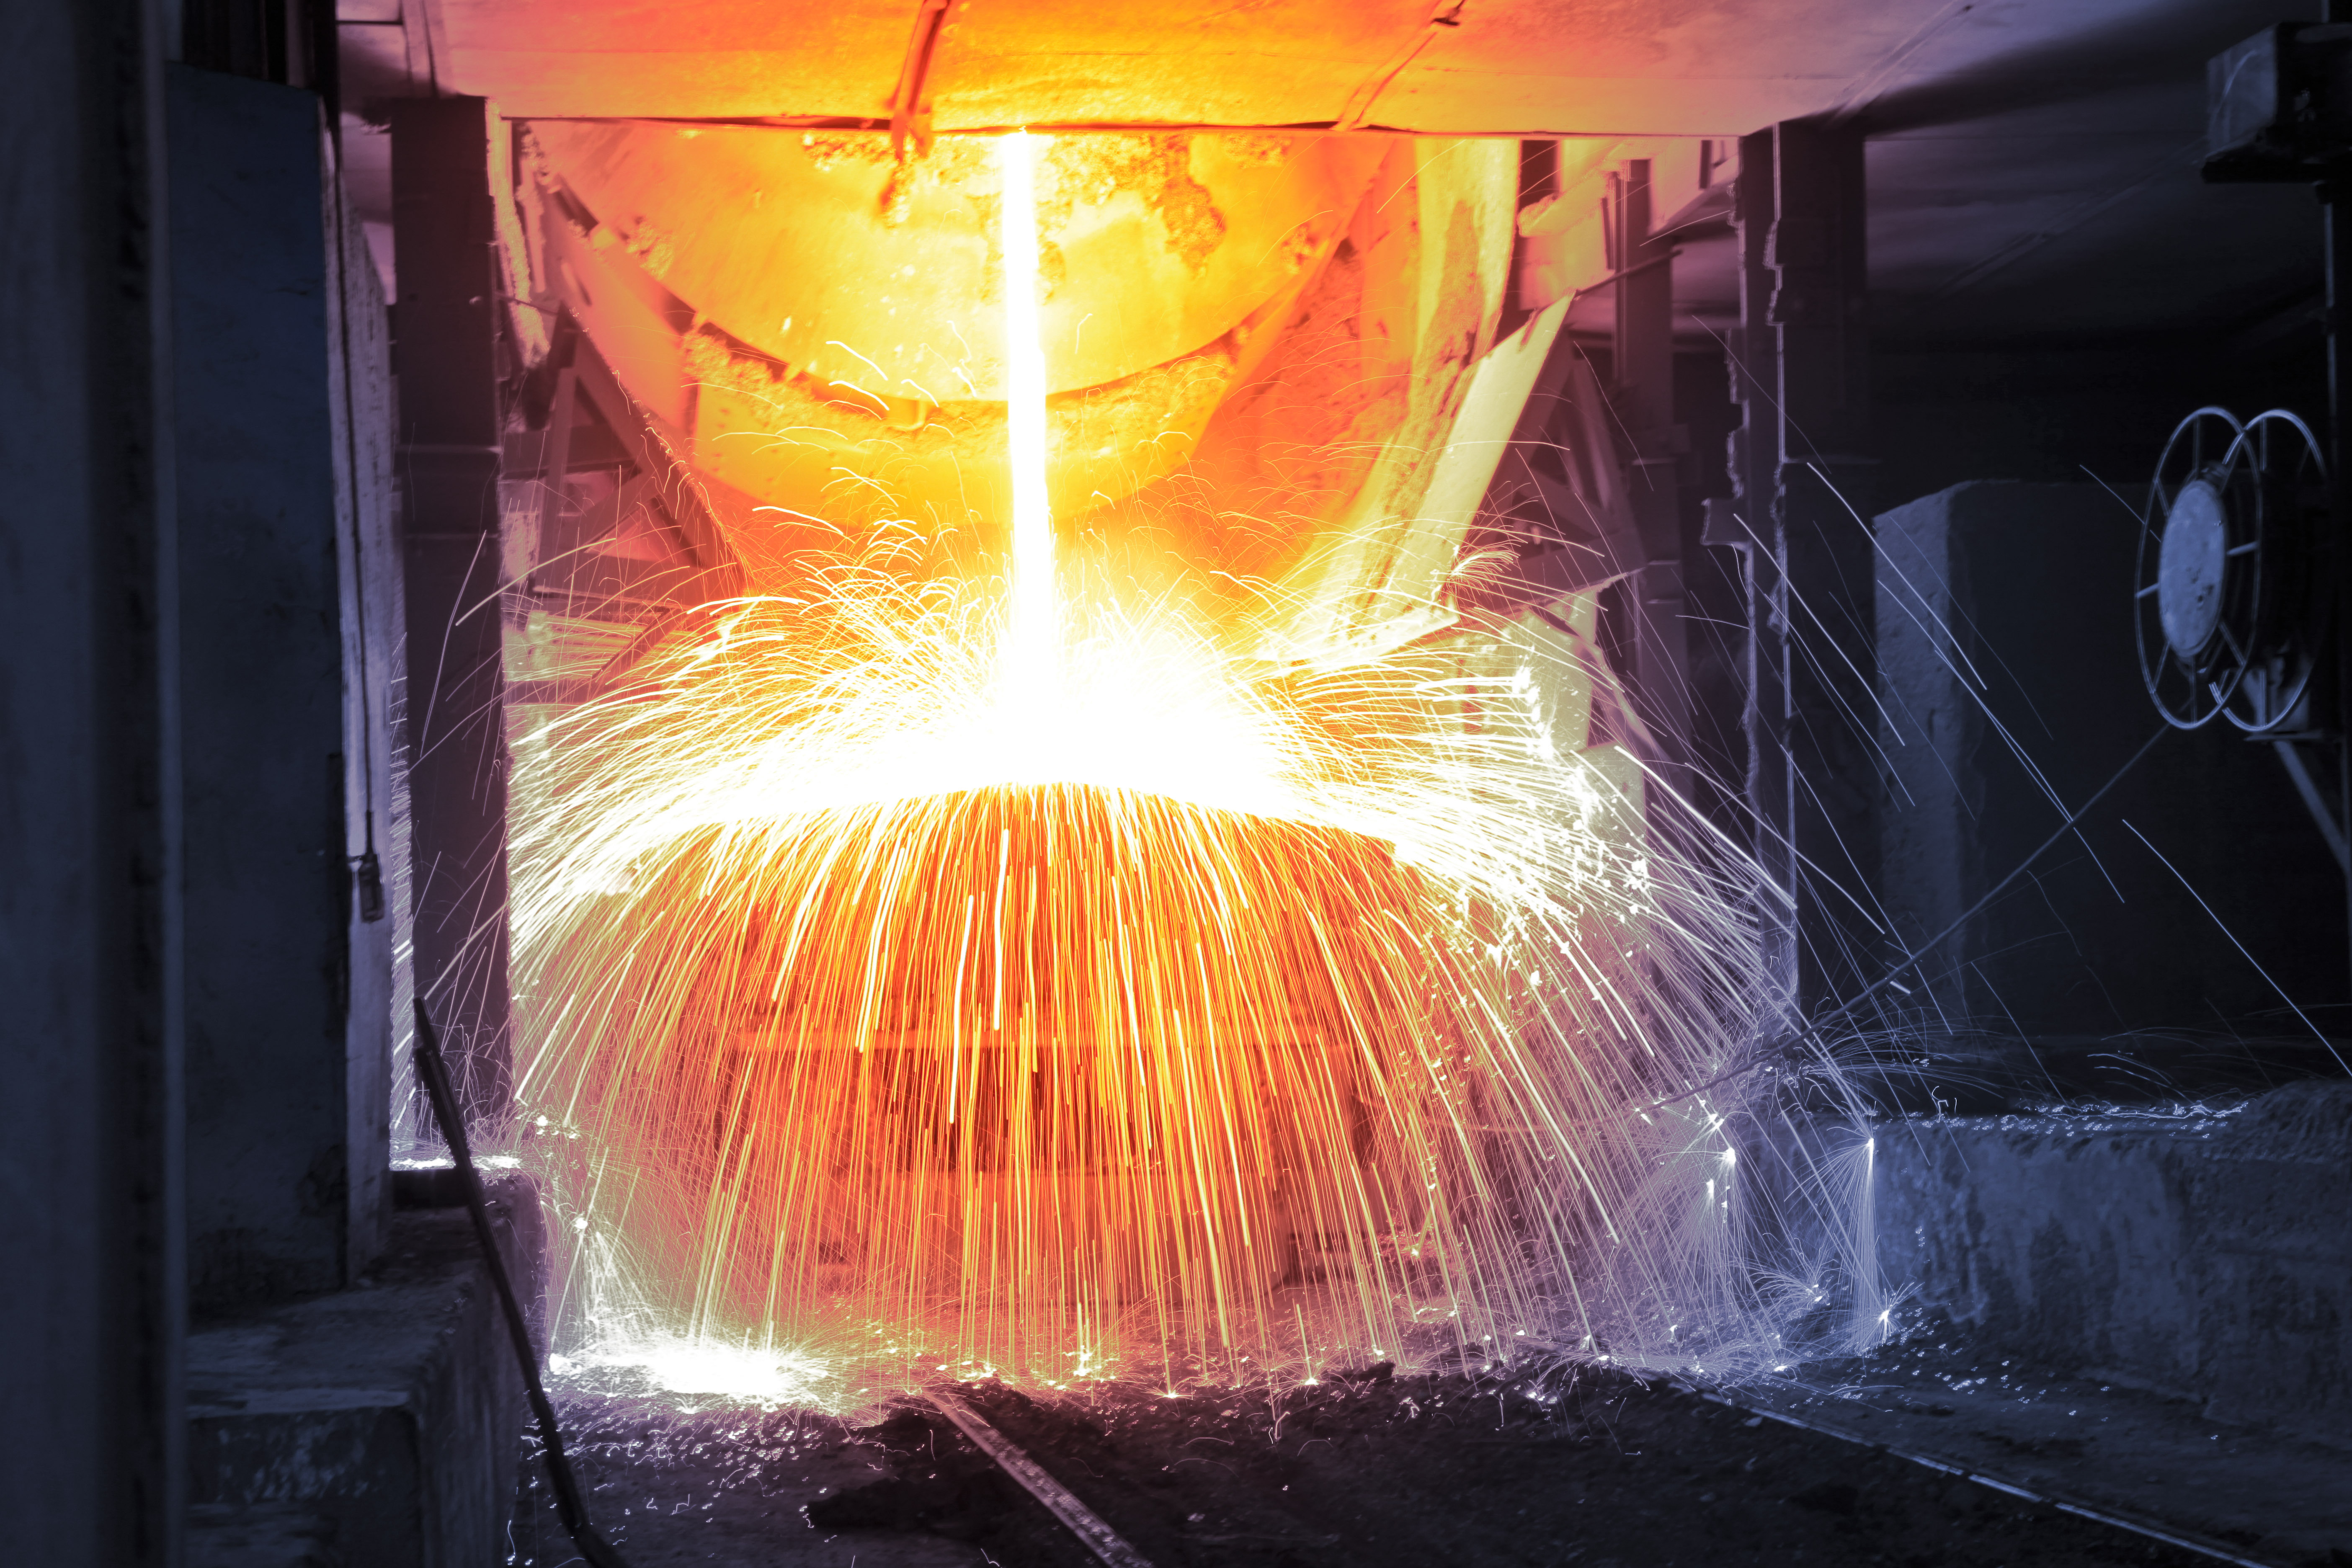 Steelworks increasingly consider rheological investigations of their melts to further improve their production processes.